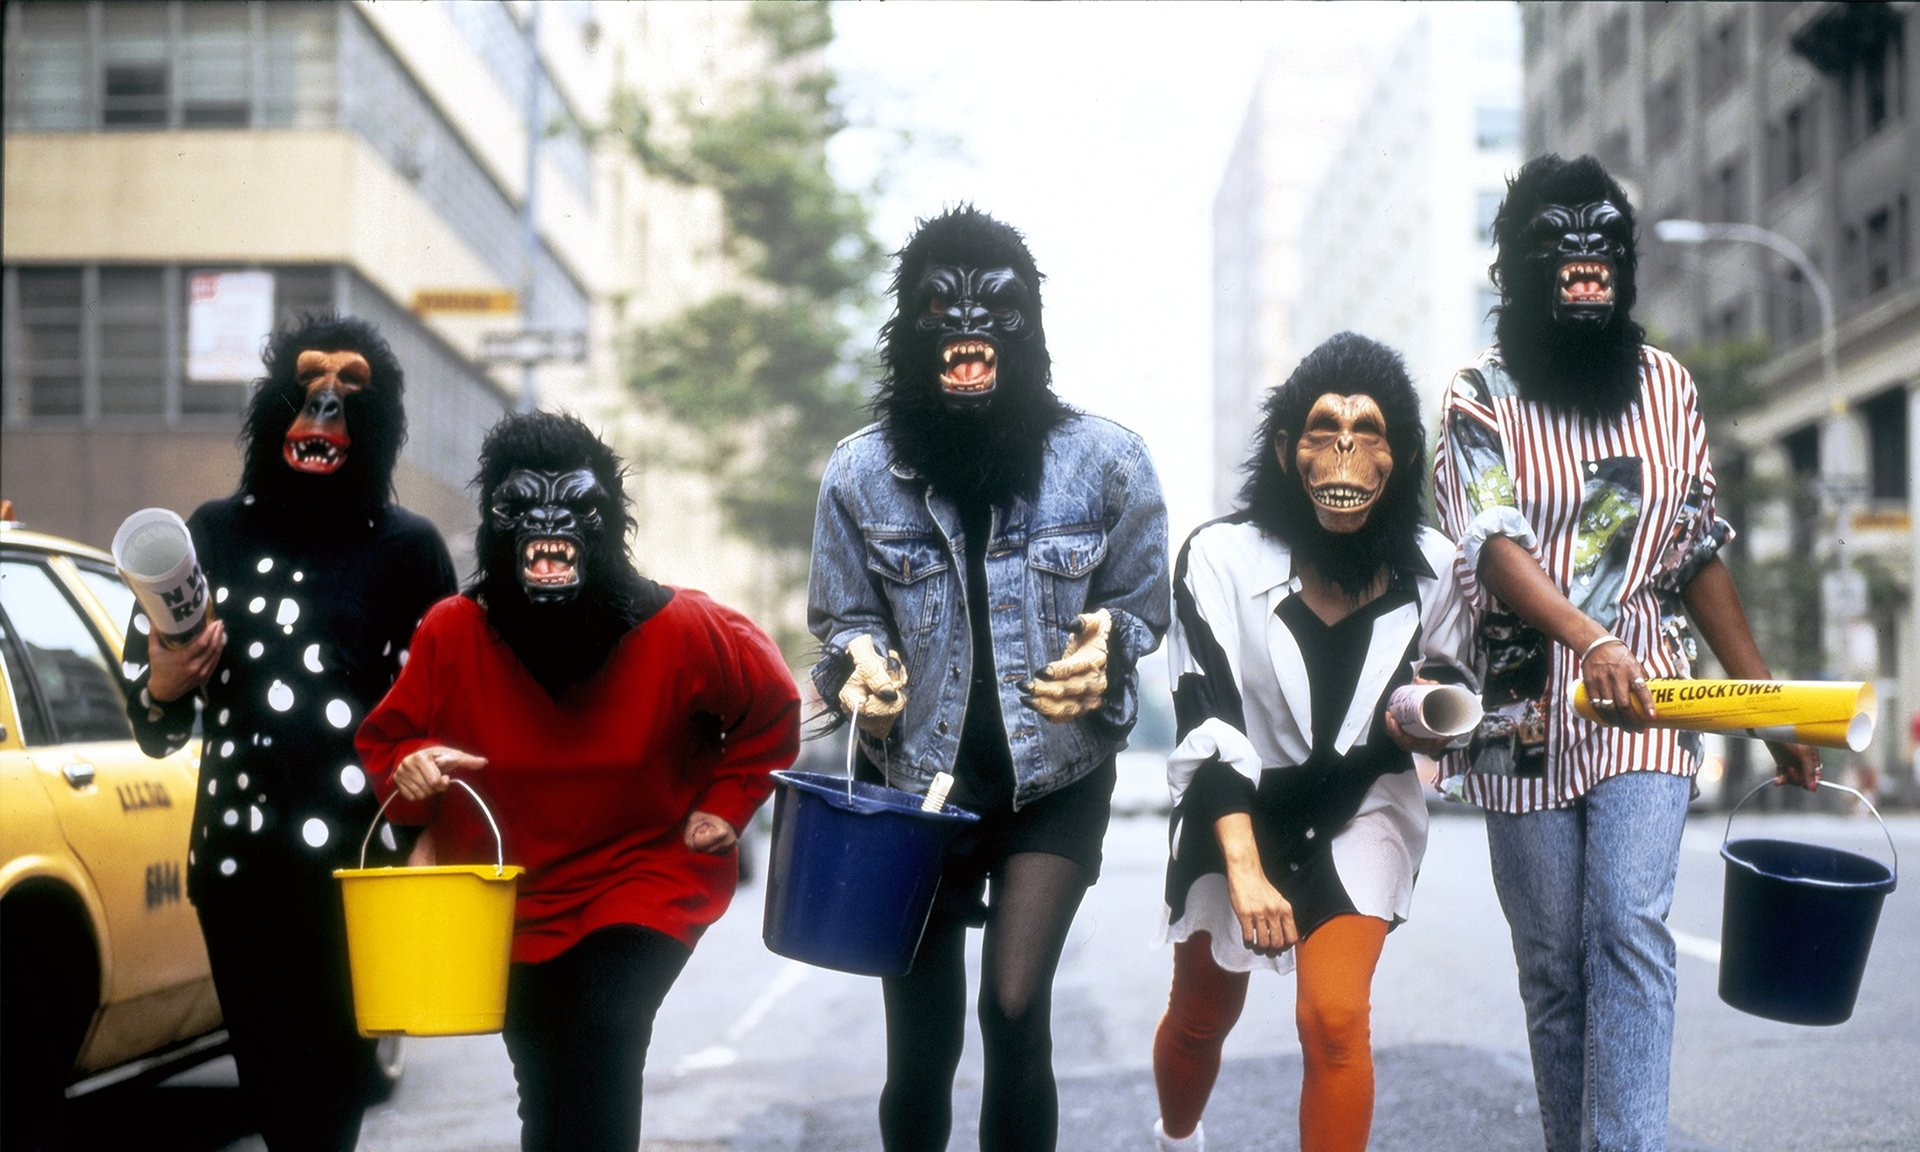 . Guerrilla girls .